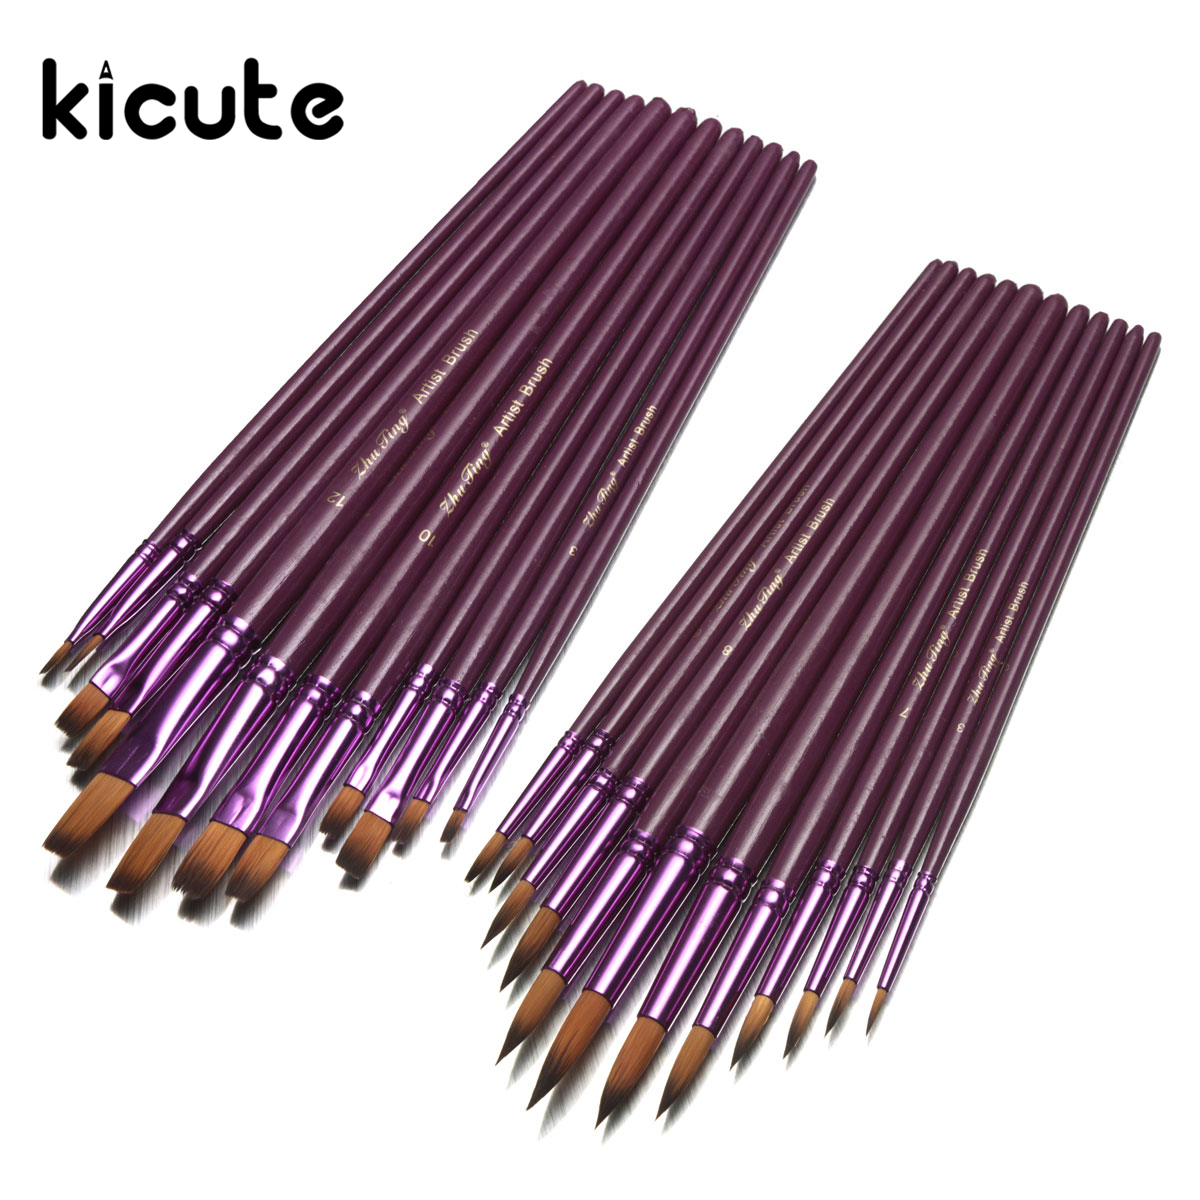 Kicute 12pcs/lot Oil Painting Drawing Painting Pen Nylon Hair Flat Tip Artist Paint Brush Pen Set For Watercolor Acrylic the factory direct large painting signature series of neutral pen 1mm 12pcs set